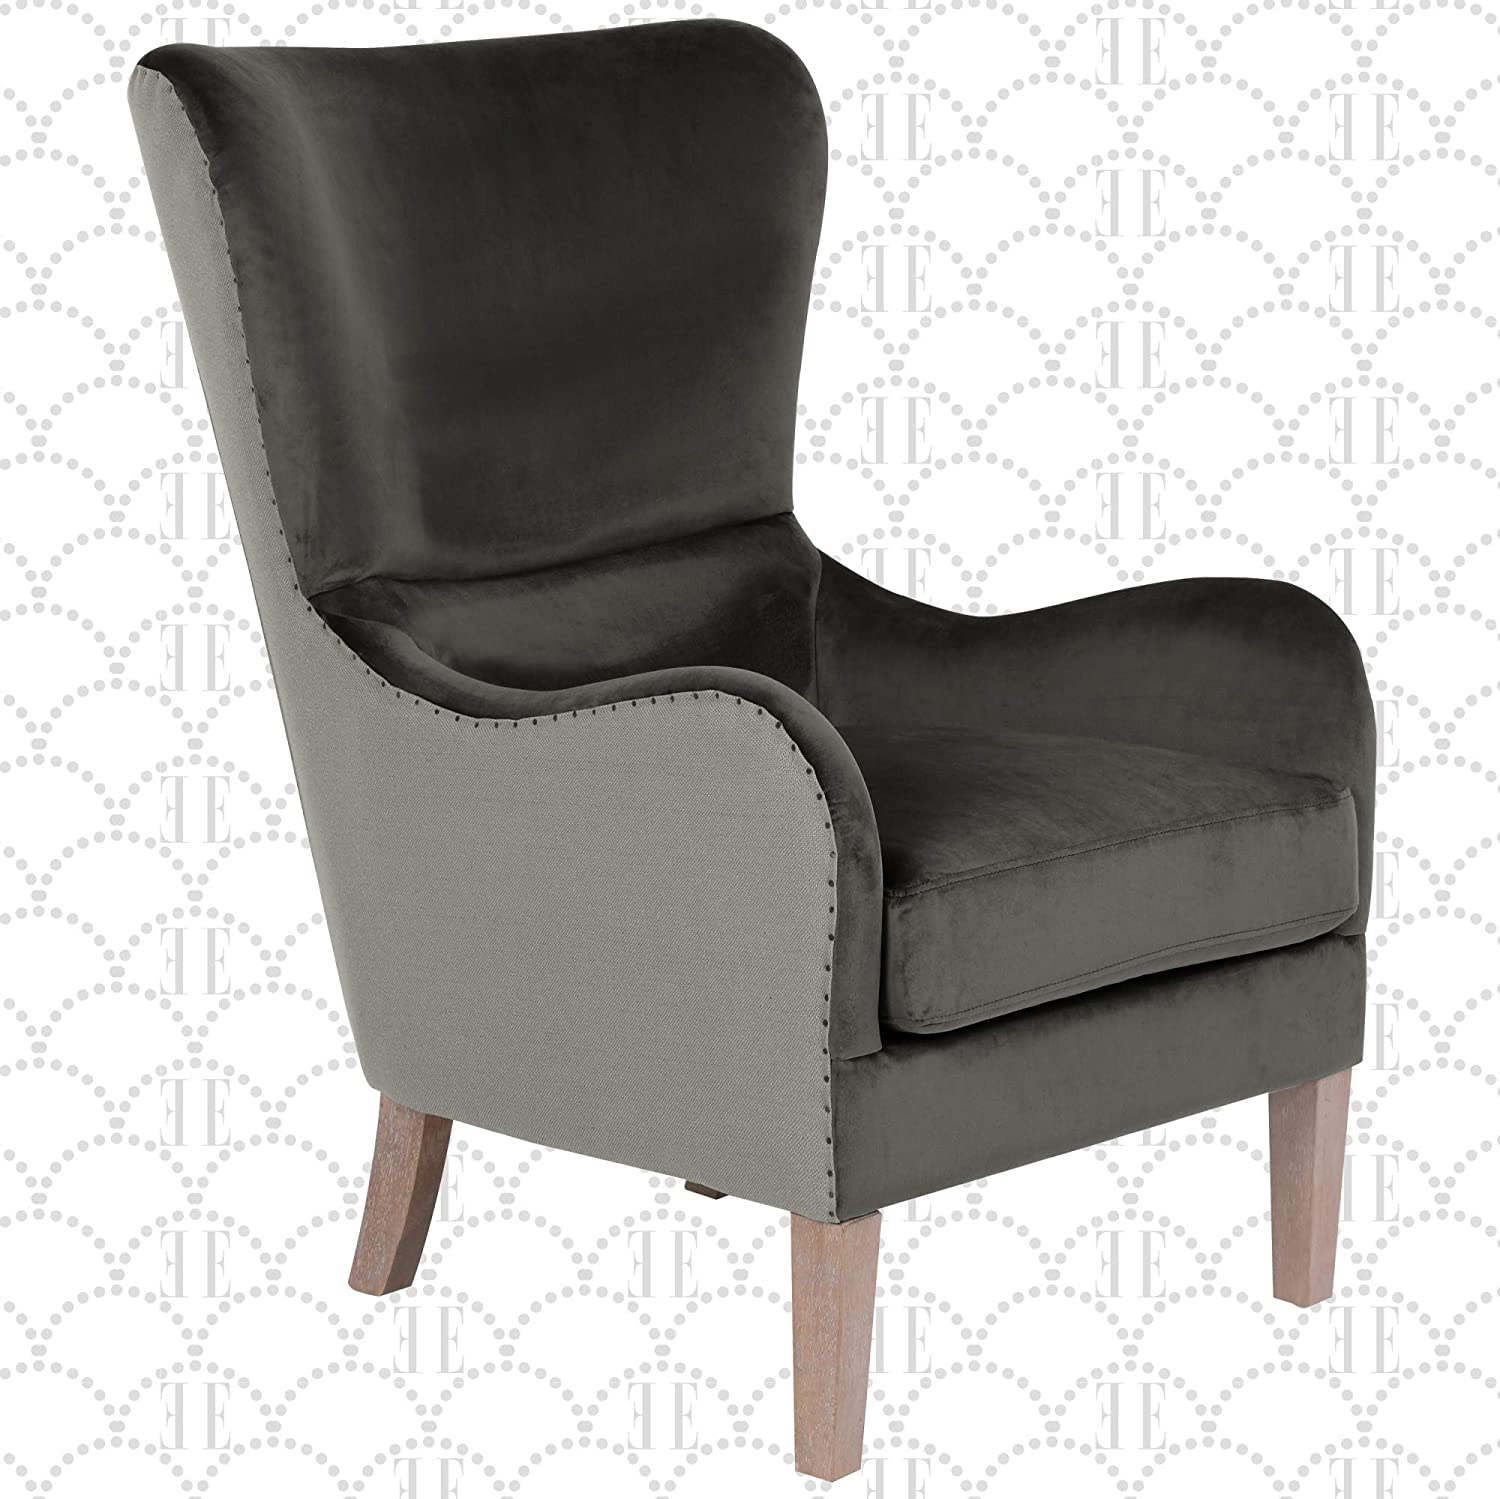 Elle Decor Farmhouse Upholstered Accent Wingback Chair